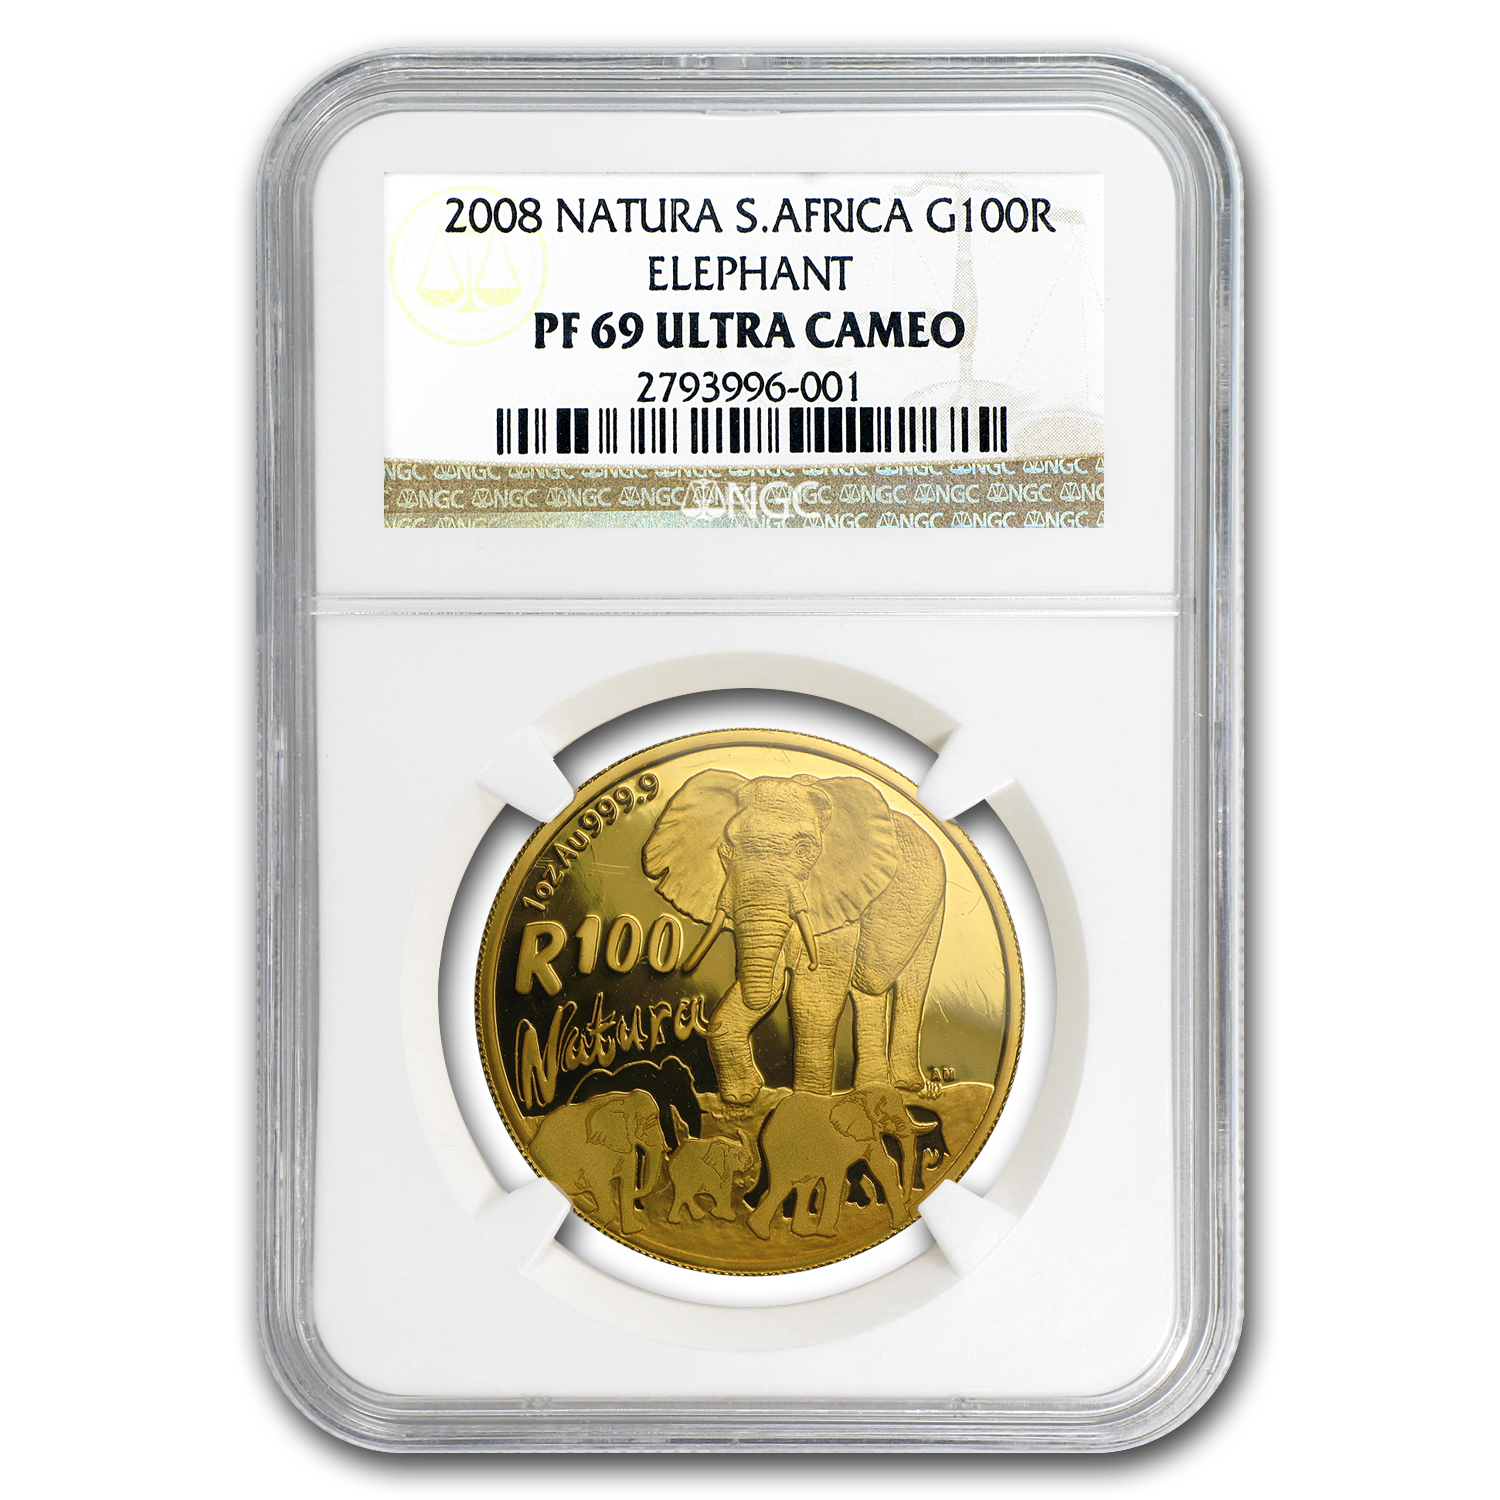 2008 South Africa 1 oz Proof Gold Natura Elephant PF-69 NGC